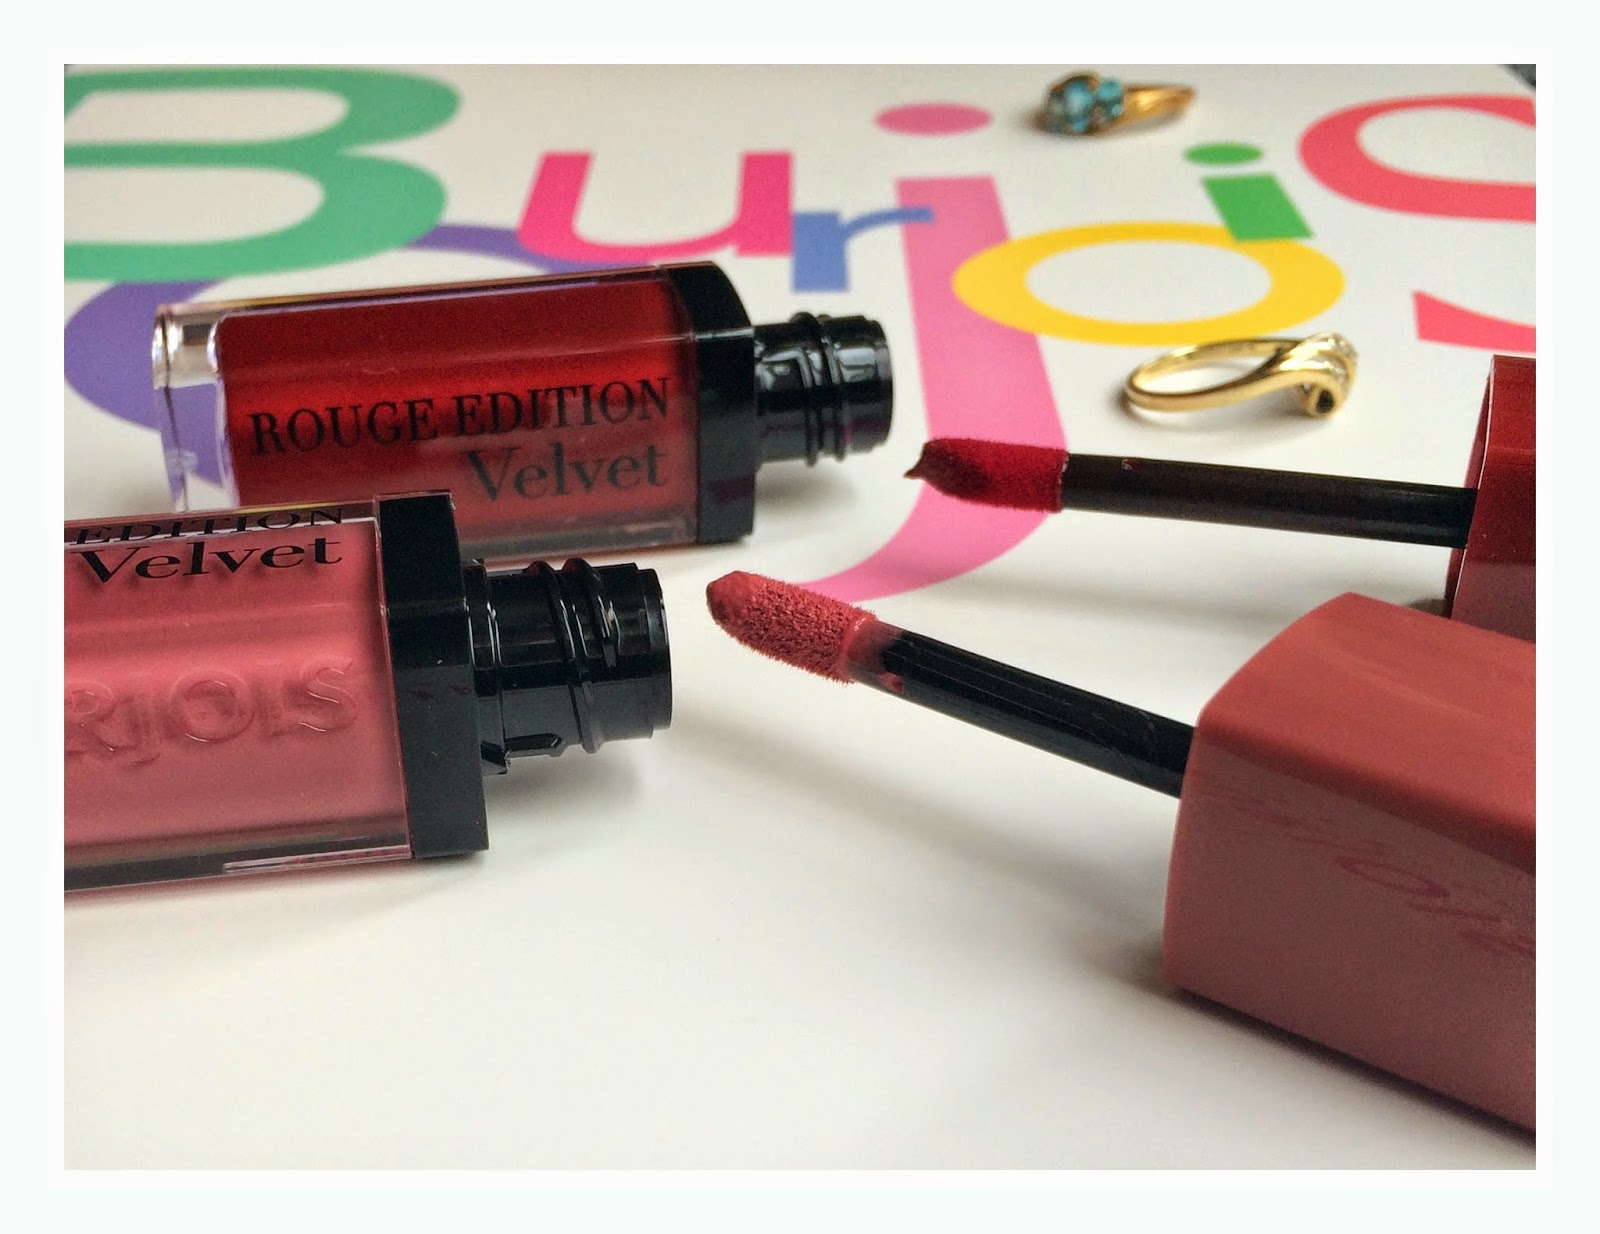 bourjois-rouge-edition-velvet-lipsticks-new-nude-red